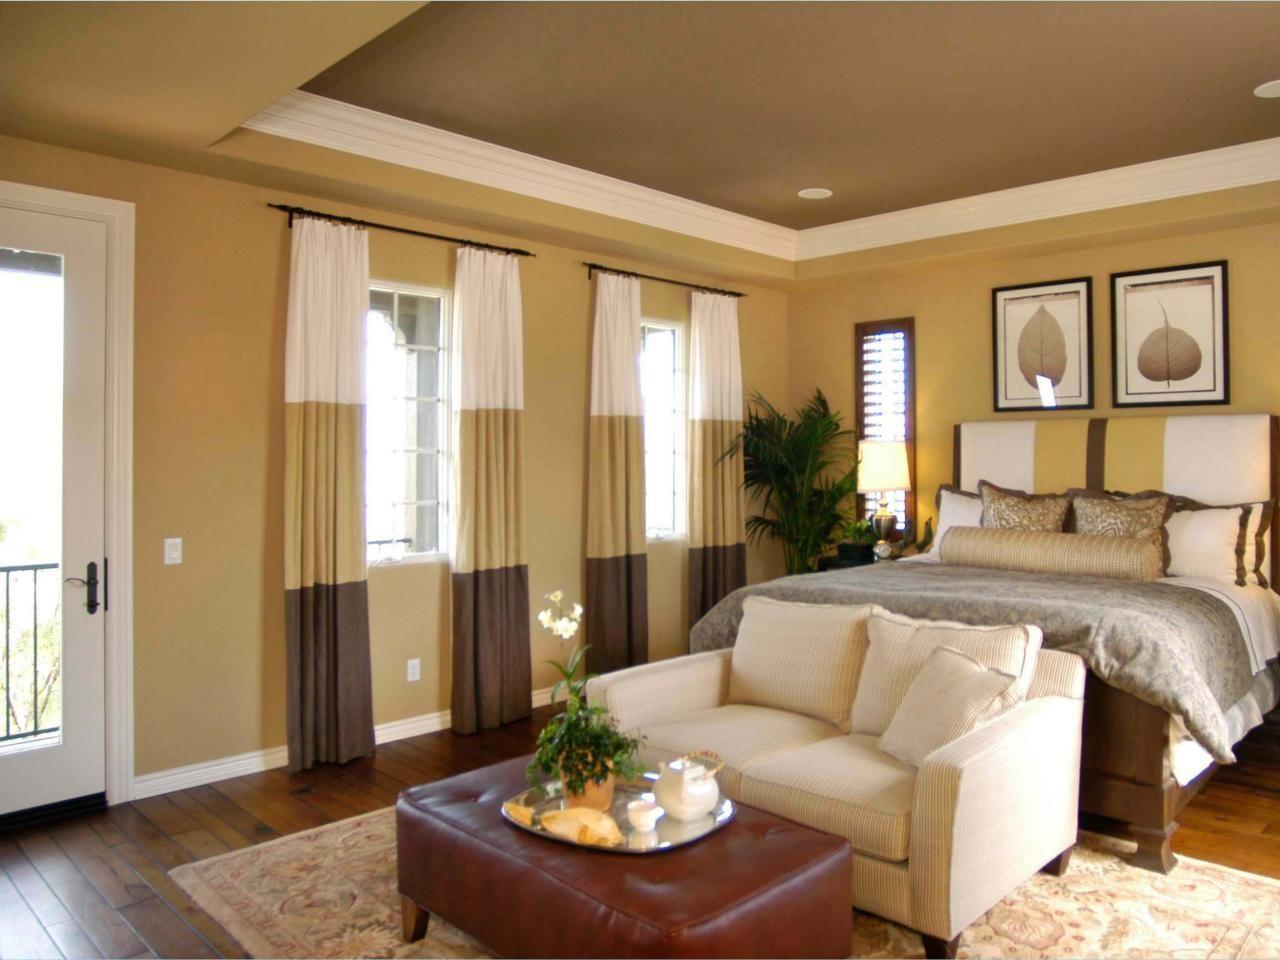 warm nice color grouping master bed rm bedroom decor 17787 | 6e2d3a01cb8ea1b125ebe62bd3adc048